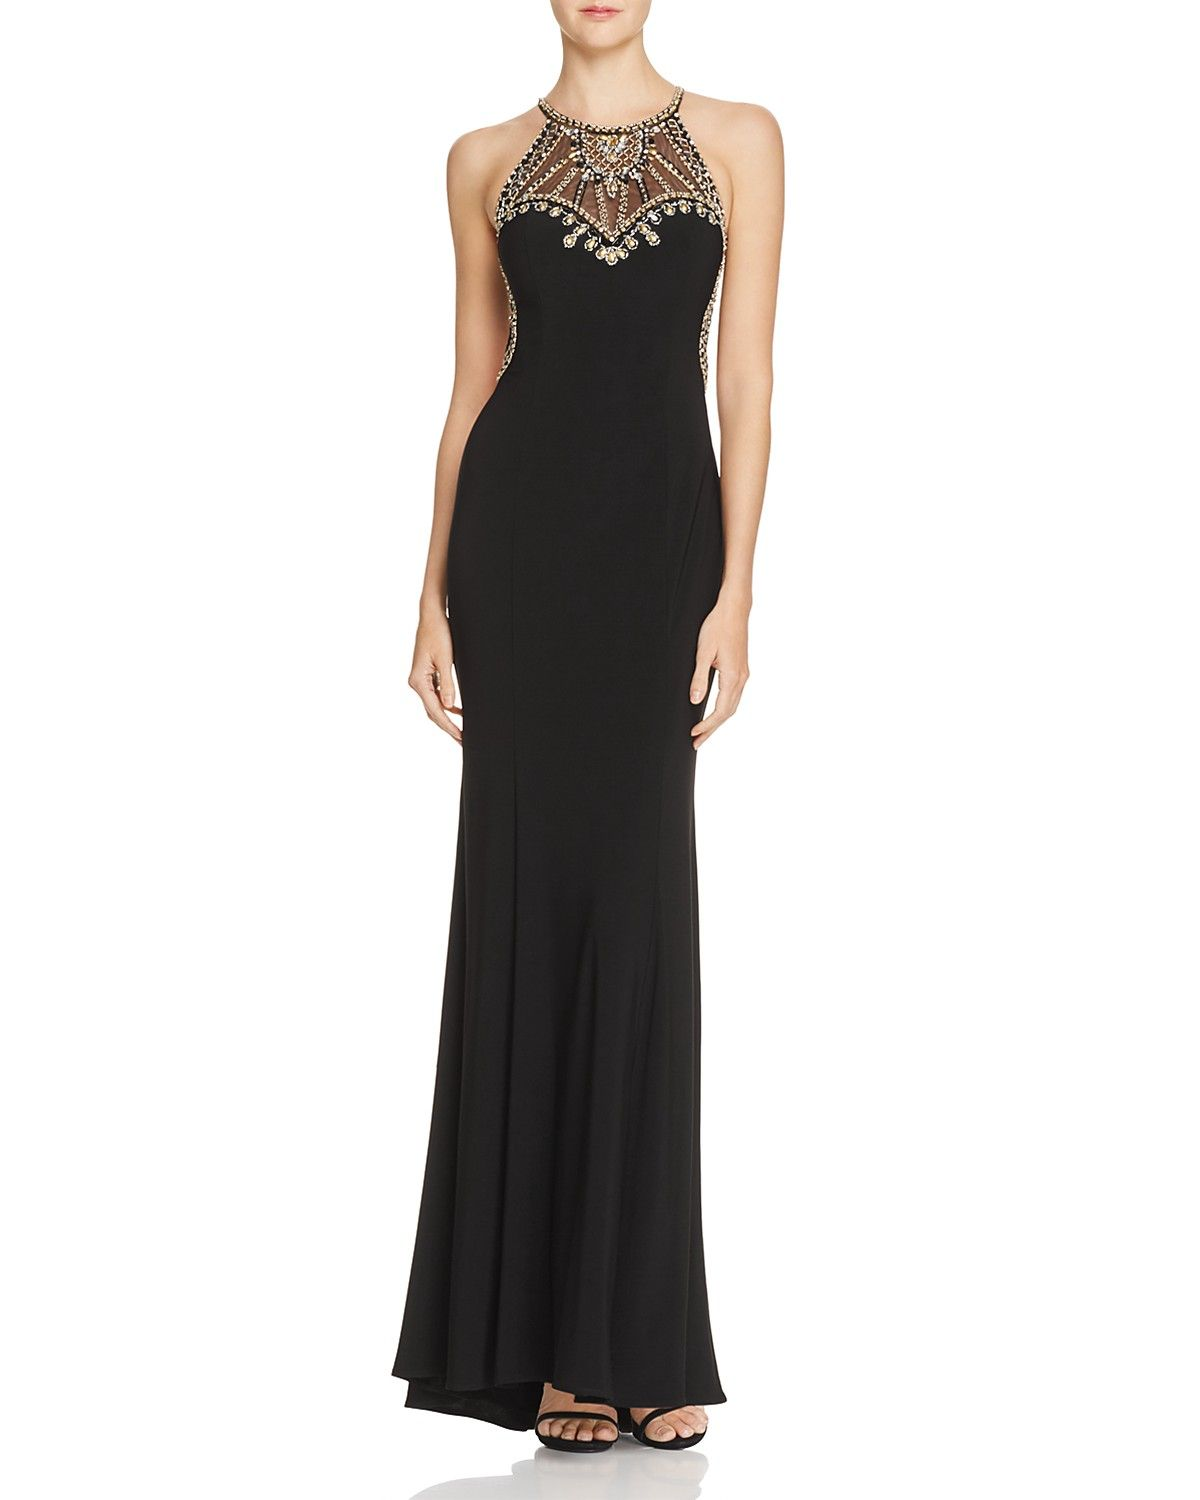 Avery G Embellished Mesh Inset Gown